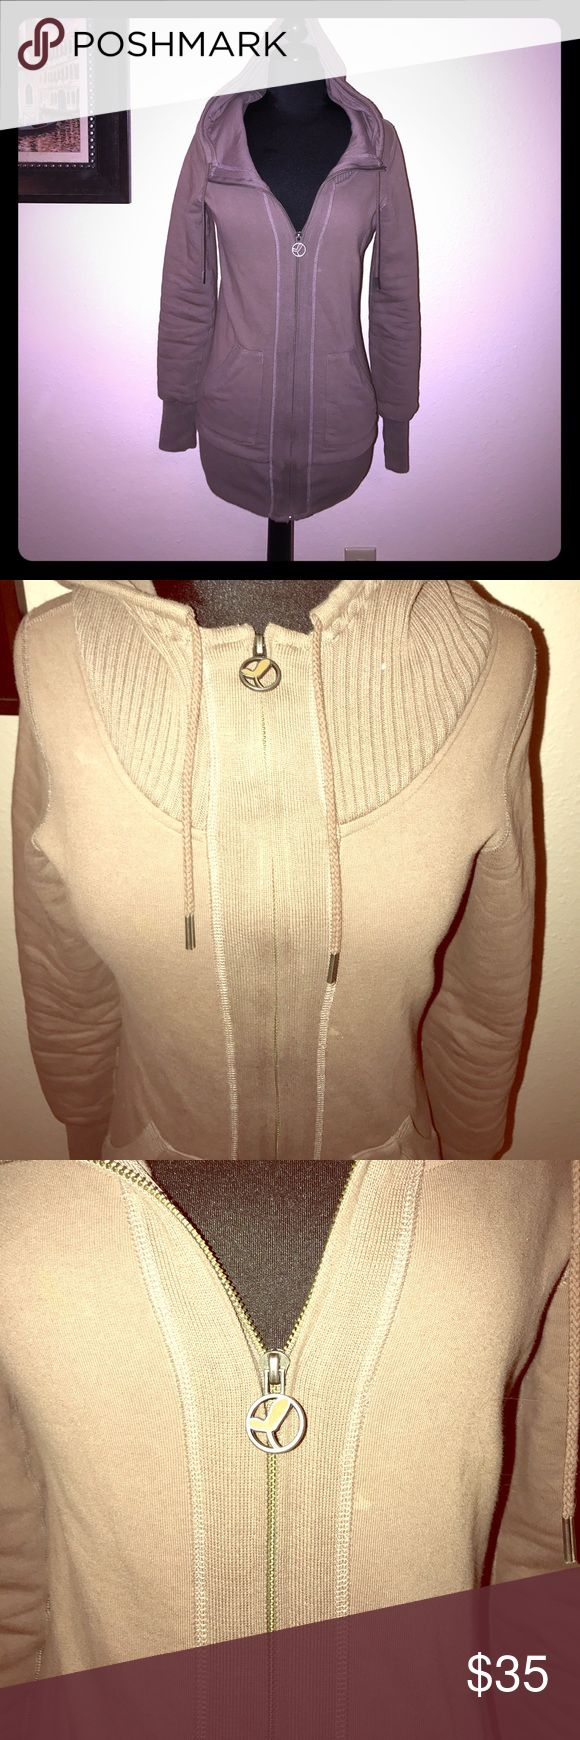 Aritzia Brown Sweat Shirt size XS Pre-owned, excellent condition! Purchased from Aritzia. Brand is Community. Zip up closure. Has an intact hood. Two pockets on each side. Soft & warm & comfy. Dark Tan colored. Size XS. Community Tops Sweatshirts & Hoodies